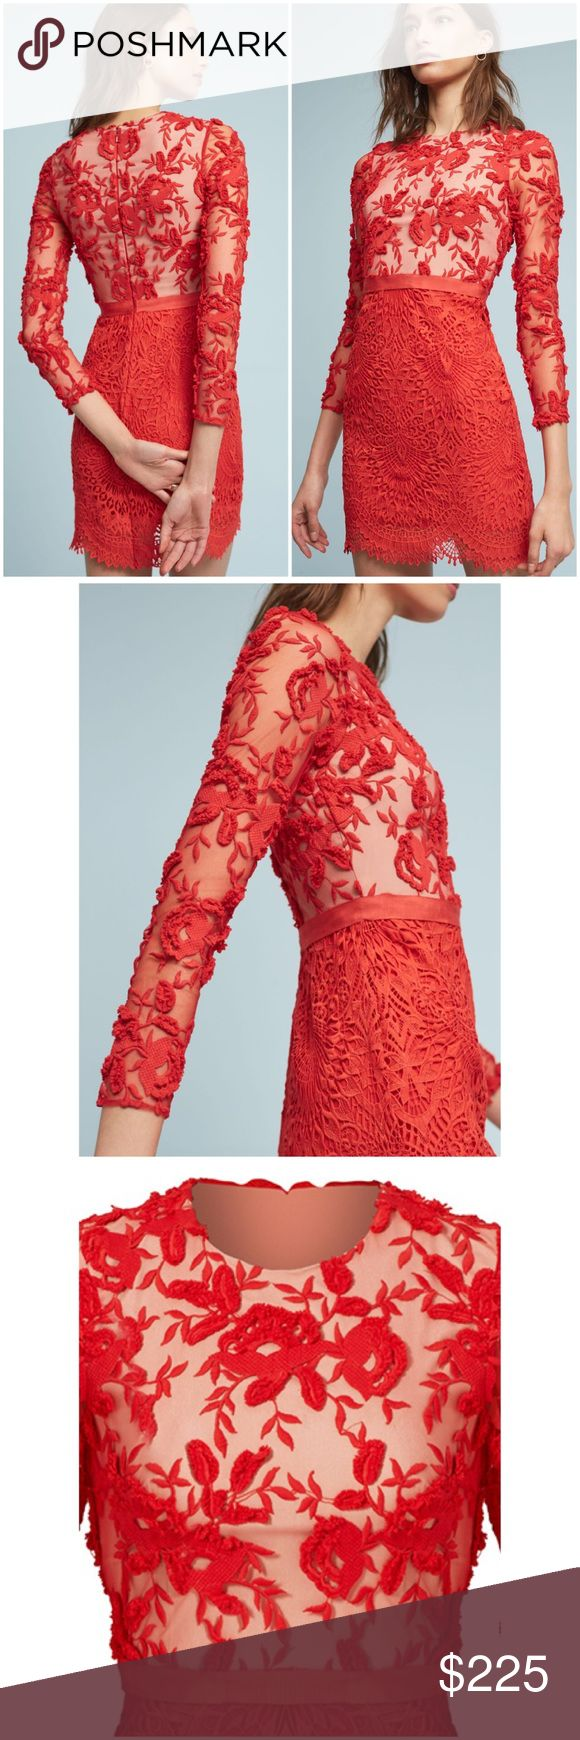 "Anthropologie Serena Embroidered Dress From ready-to-wear to bridal, each sophisticated collection from Monique Lhuillier is even more exquisite than the last.❤️ Get ready to turn heads in a striking red sheath dress with delicate lace detail. Polyester; lace overlay Sheath silhouette Embroidered lace detail Back zip Dry clean Imported Dimensions Falls 36"" from shoulder. Tag Says 16 but would fit 12/XL IMO. Bust 22"" waist 18"" hip 24"". All measurements are approximate Anthropologie Dresses"